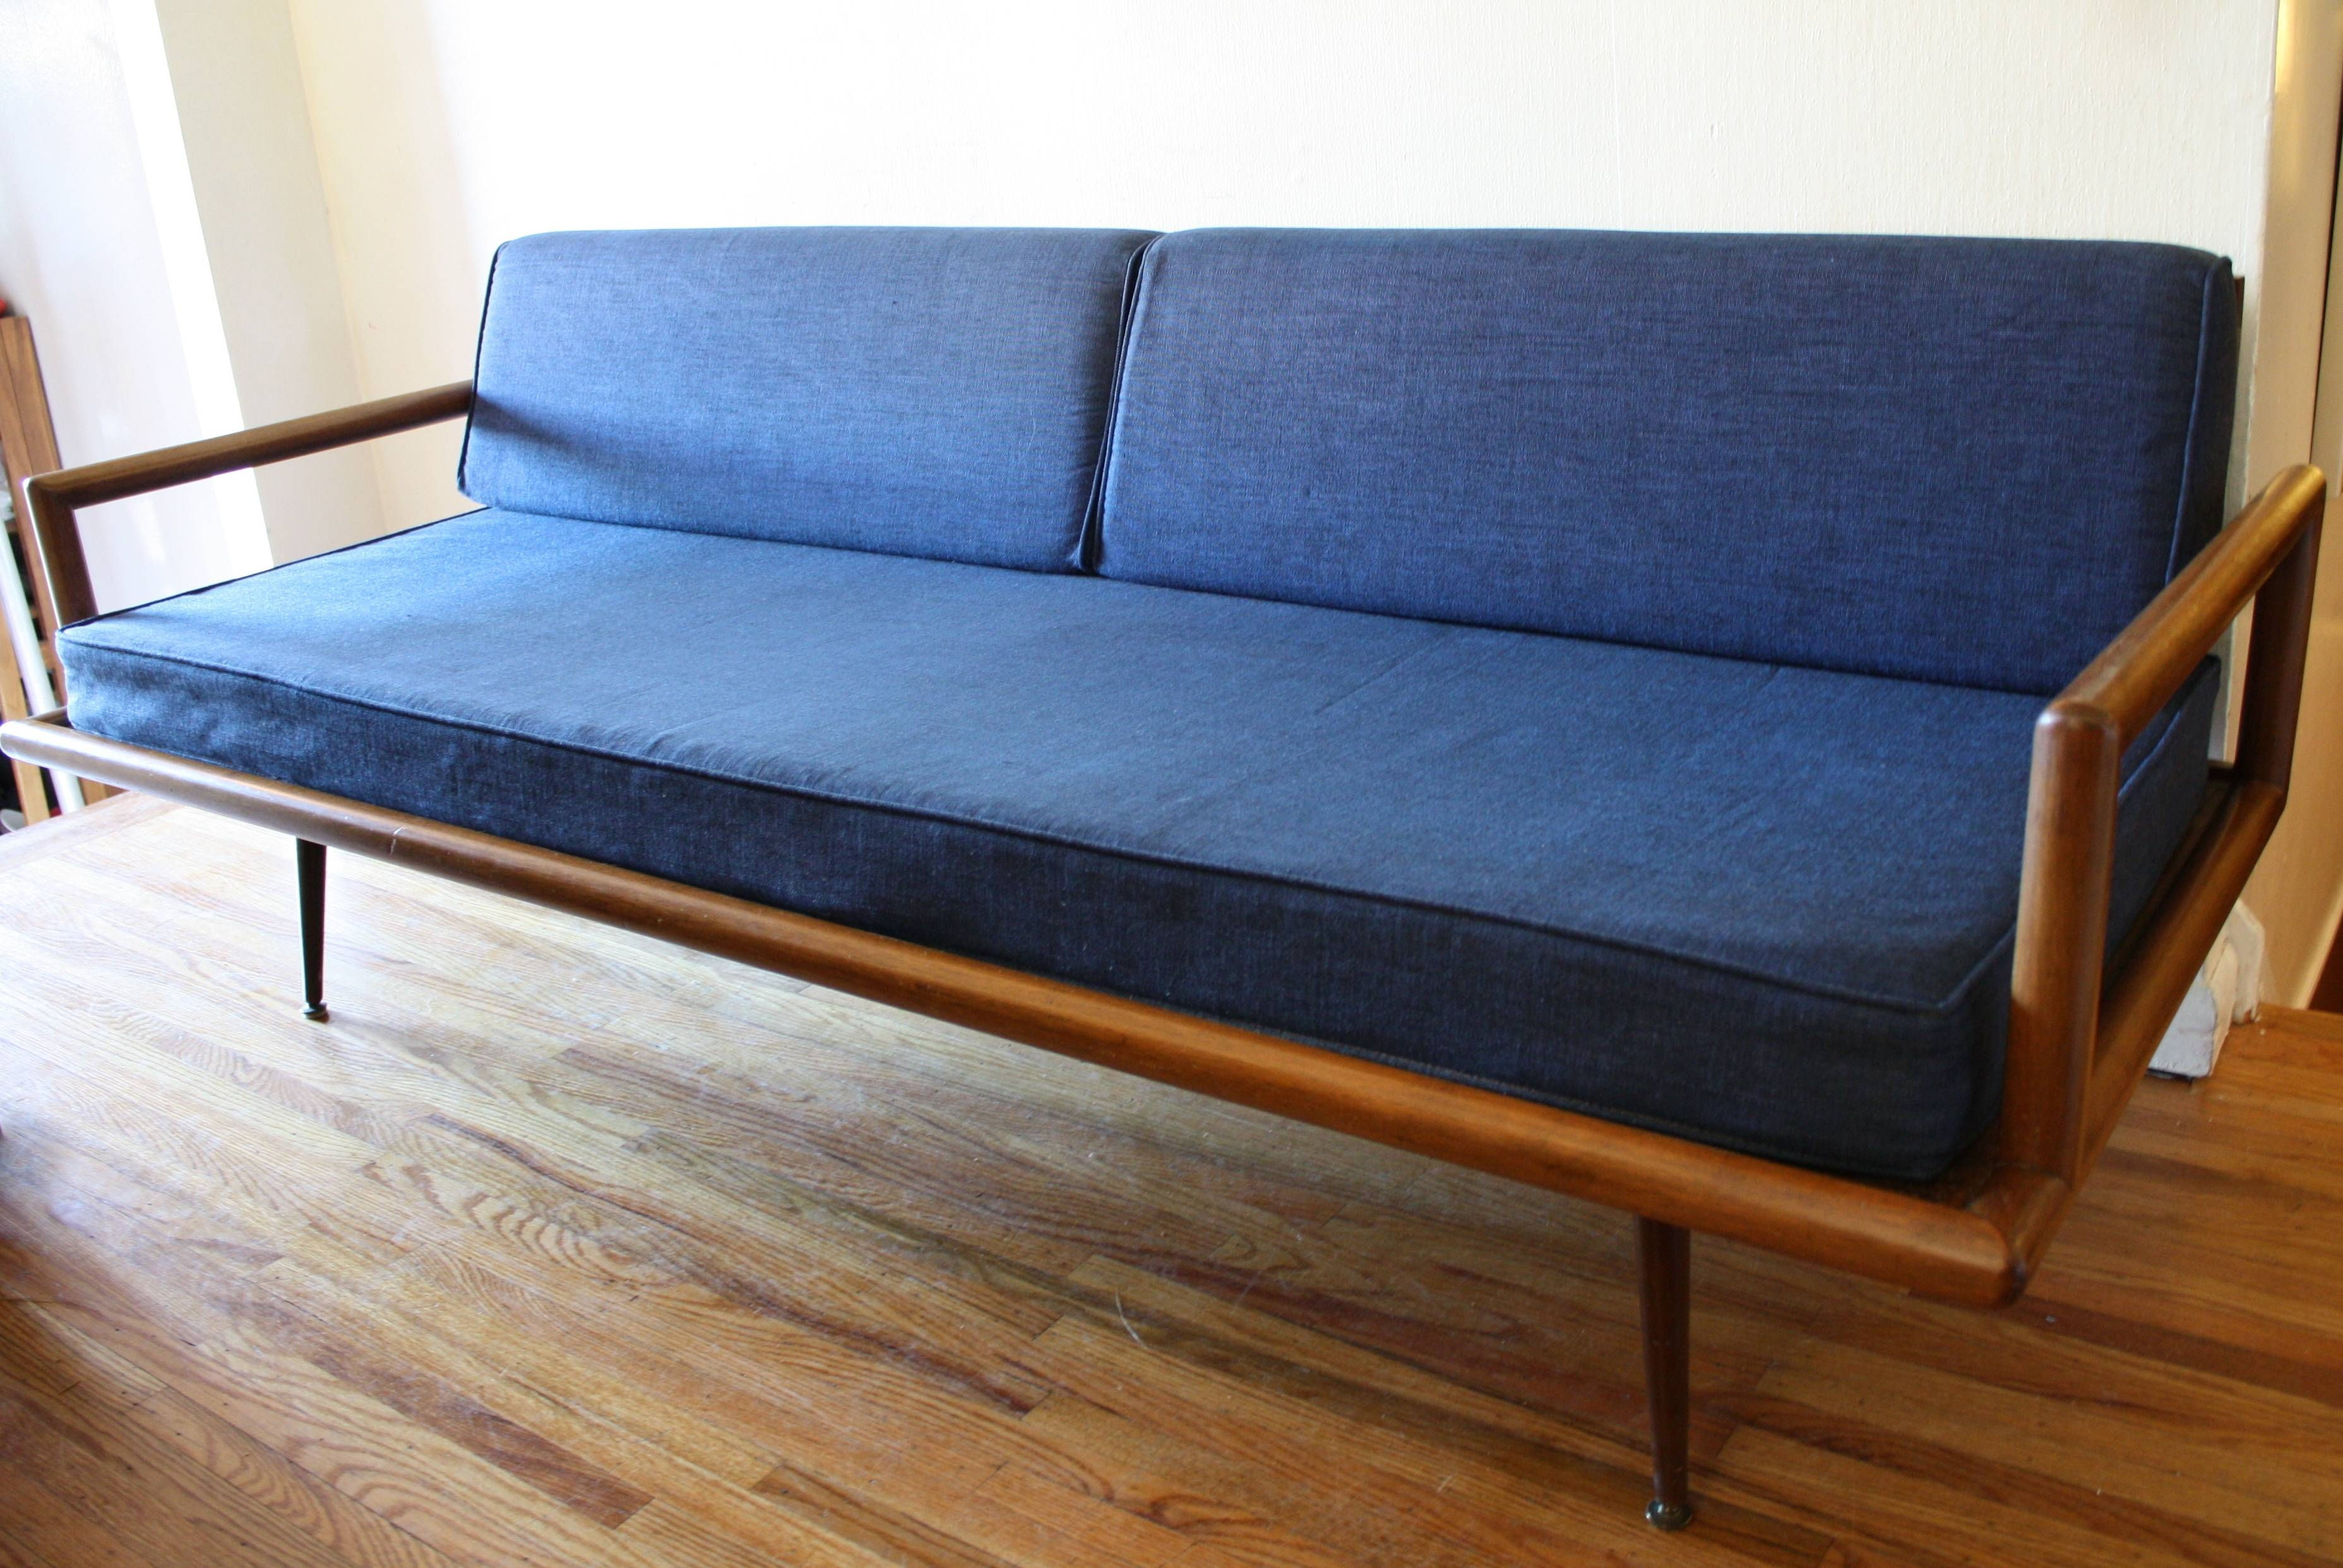 Mid Century Modern Sofa Couch | Picked Vintage intended for Danish Modern Sofas (Image 9 of 15)